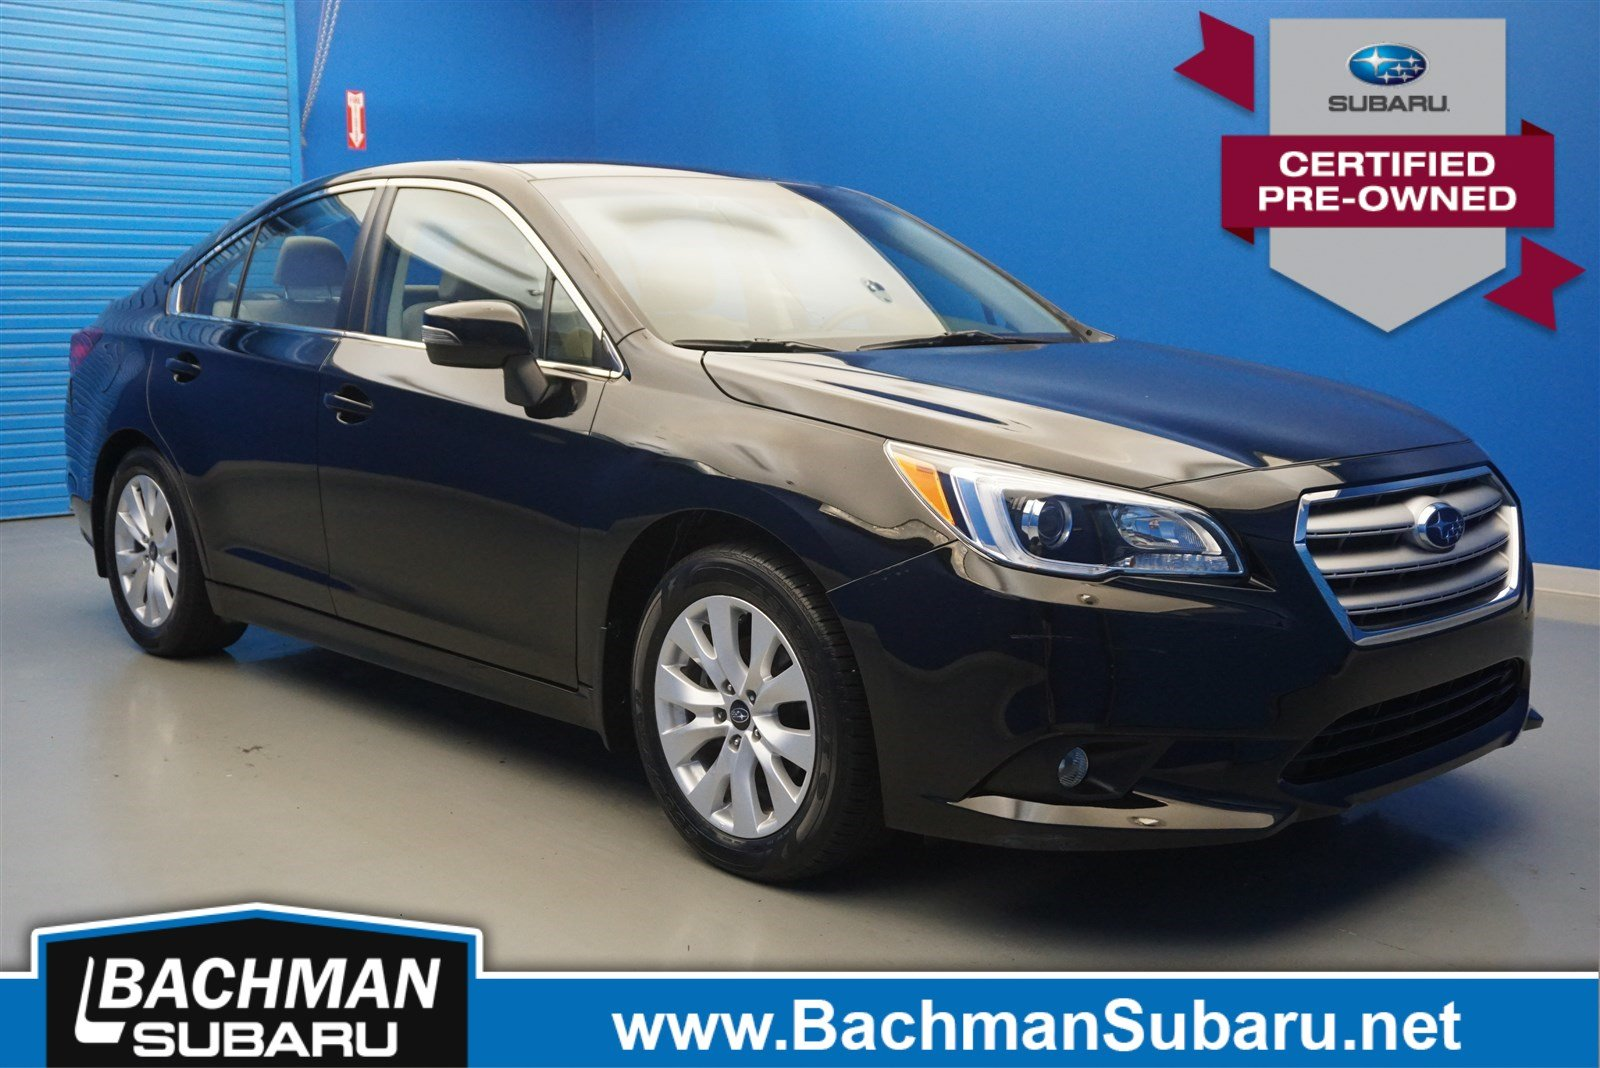 Subaru Legacy: Passenger's frontal airbag ON and OFF indicators